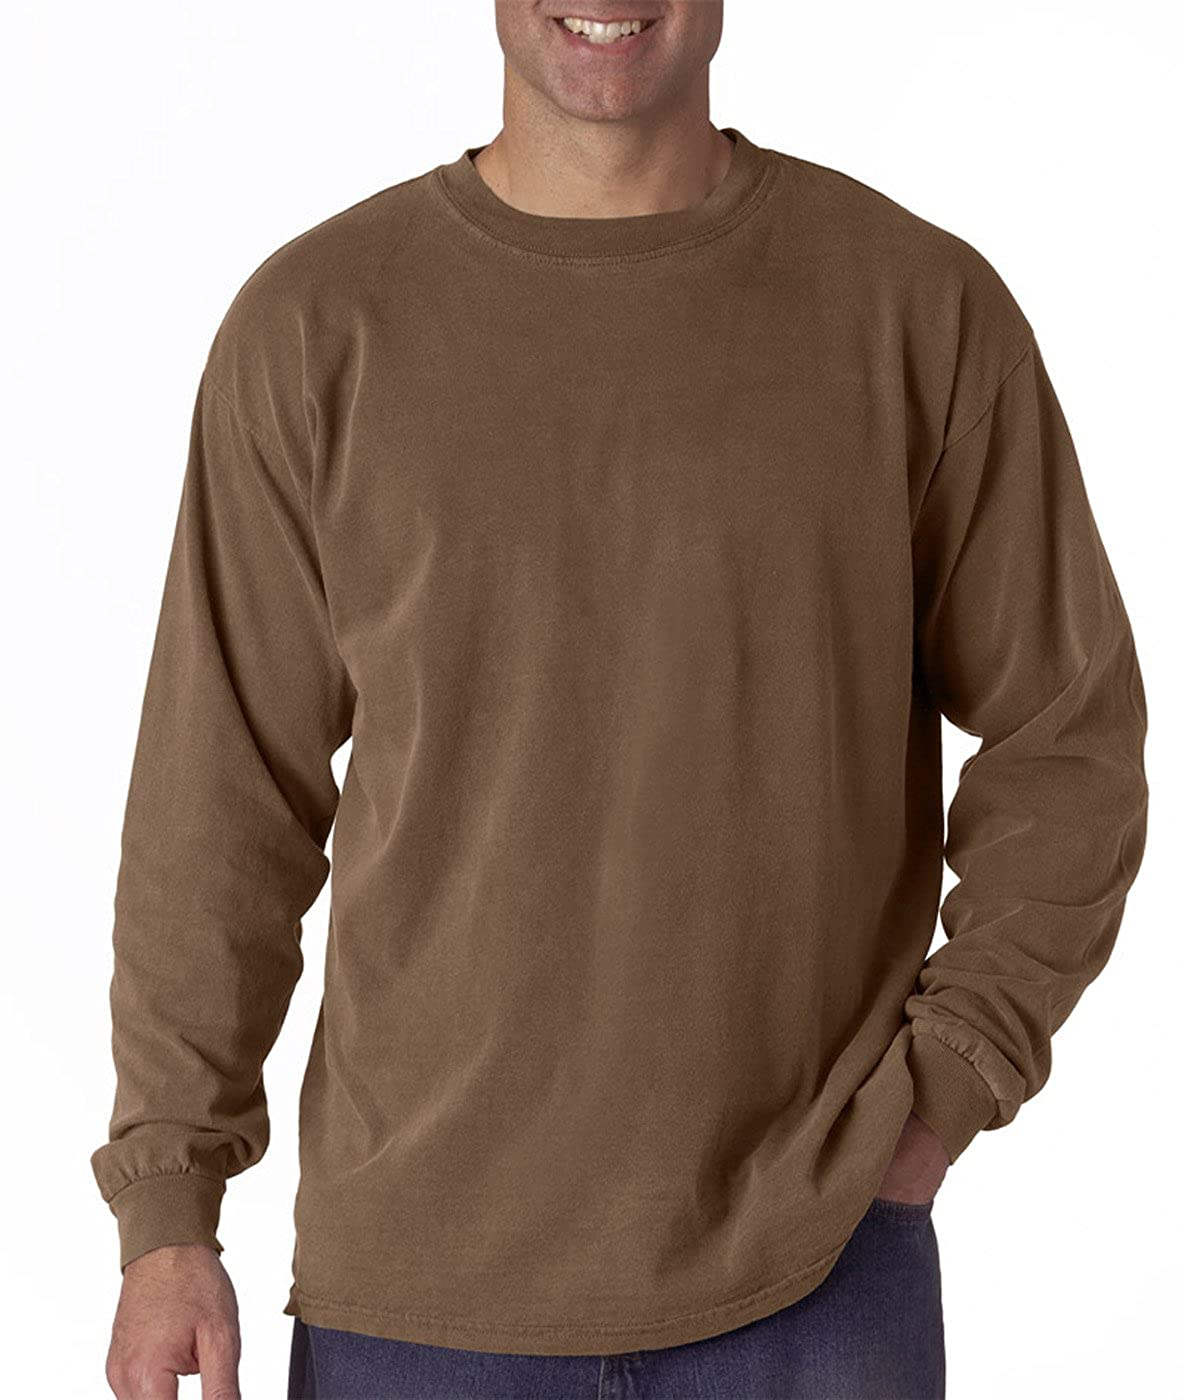 aed2120fc Amazon.com: Comfort Colors 6014 - 6.1 Ounce Ringspun Cotton Long Sleeve T- Shirt: Clothing